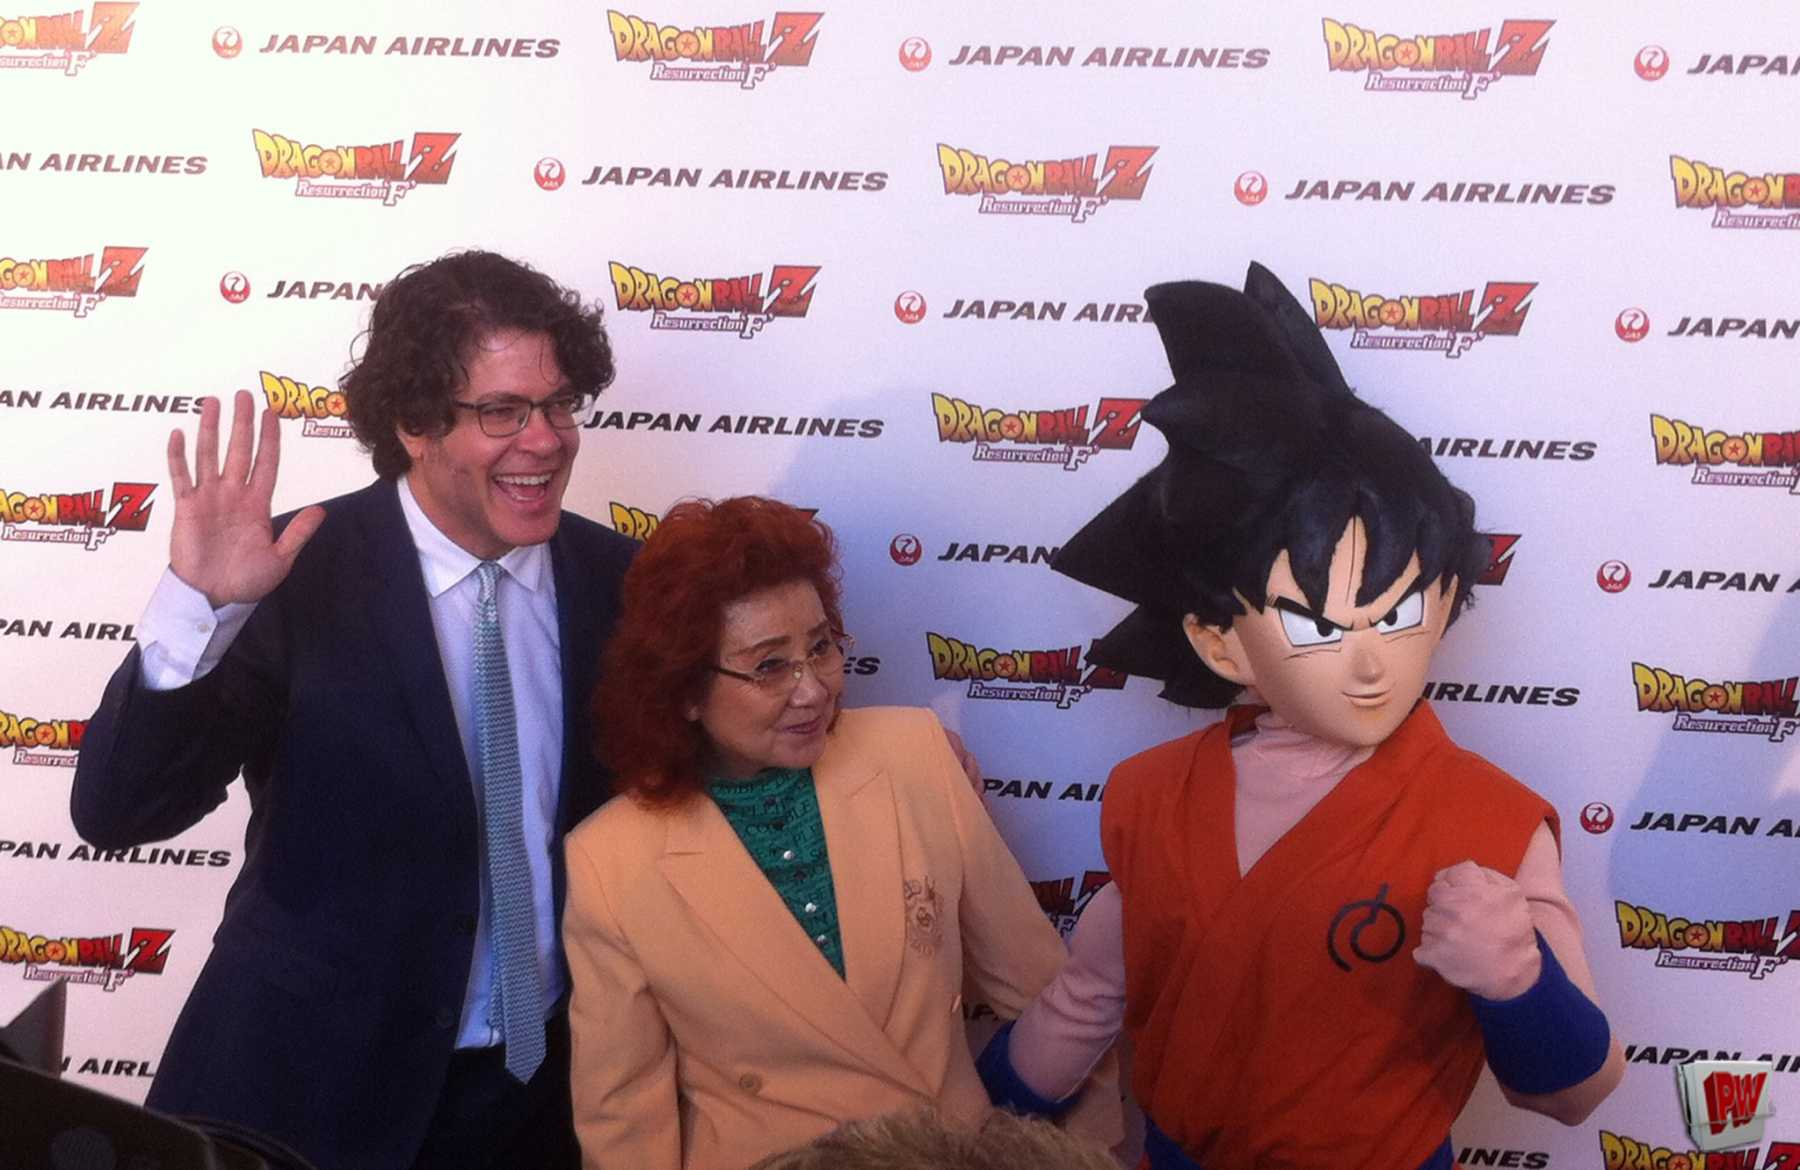 PopWrapped Attends The Premiere Of Dragon Ball Z: Resurrection 'F' | Dragon Ball Z